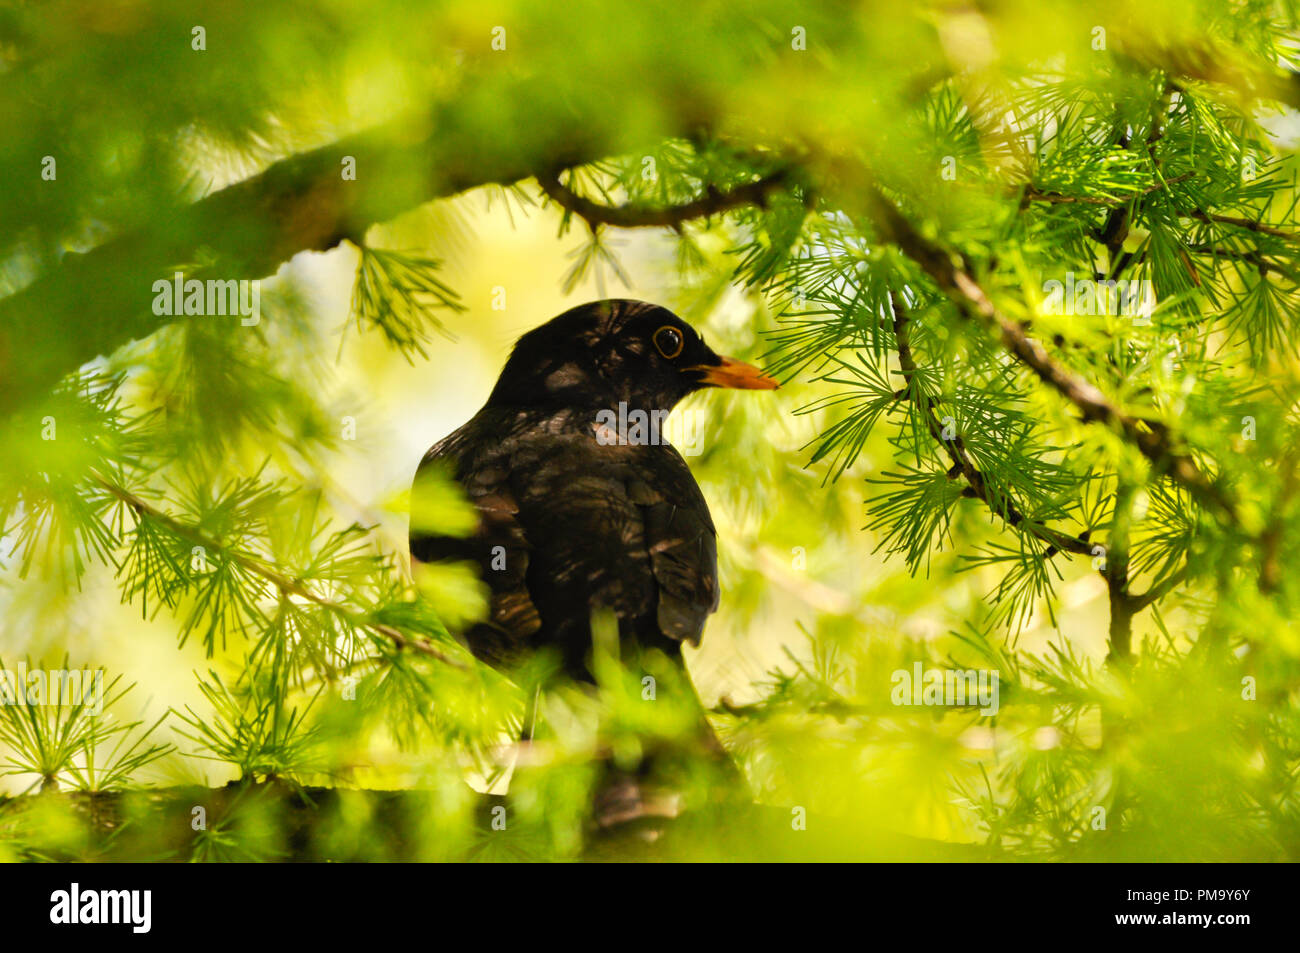 Blackbird perching on branch among conifers, in forest - Stock Image